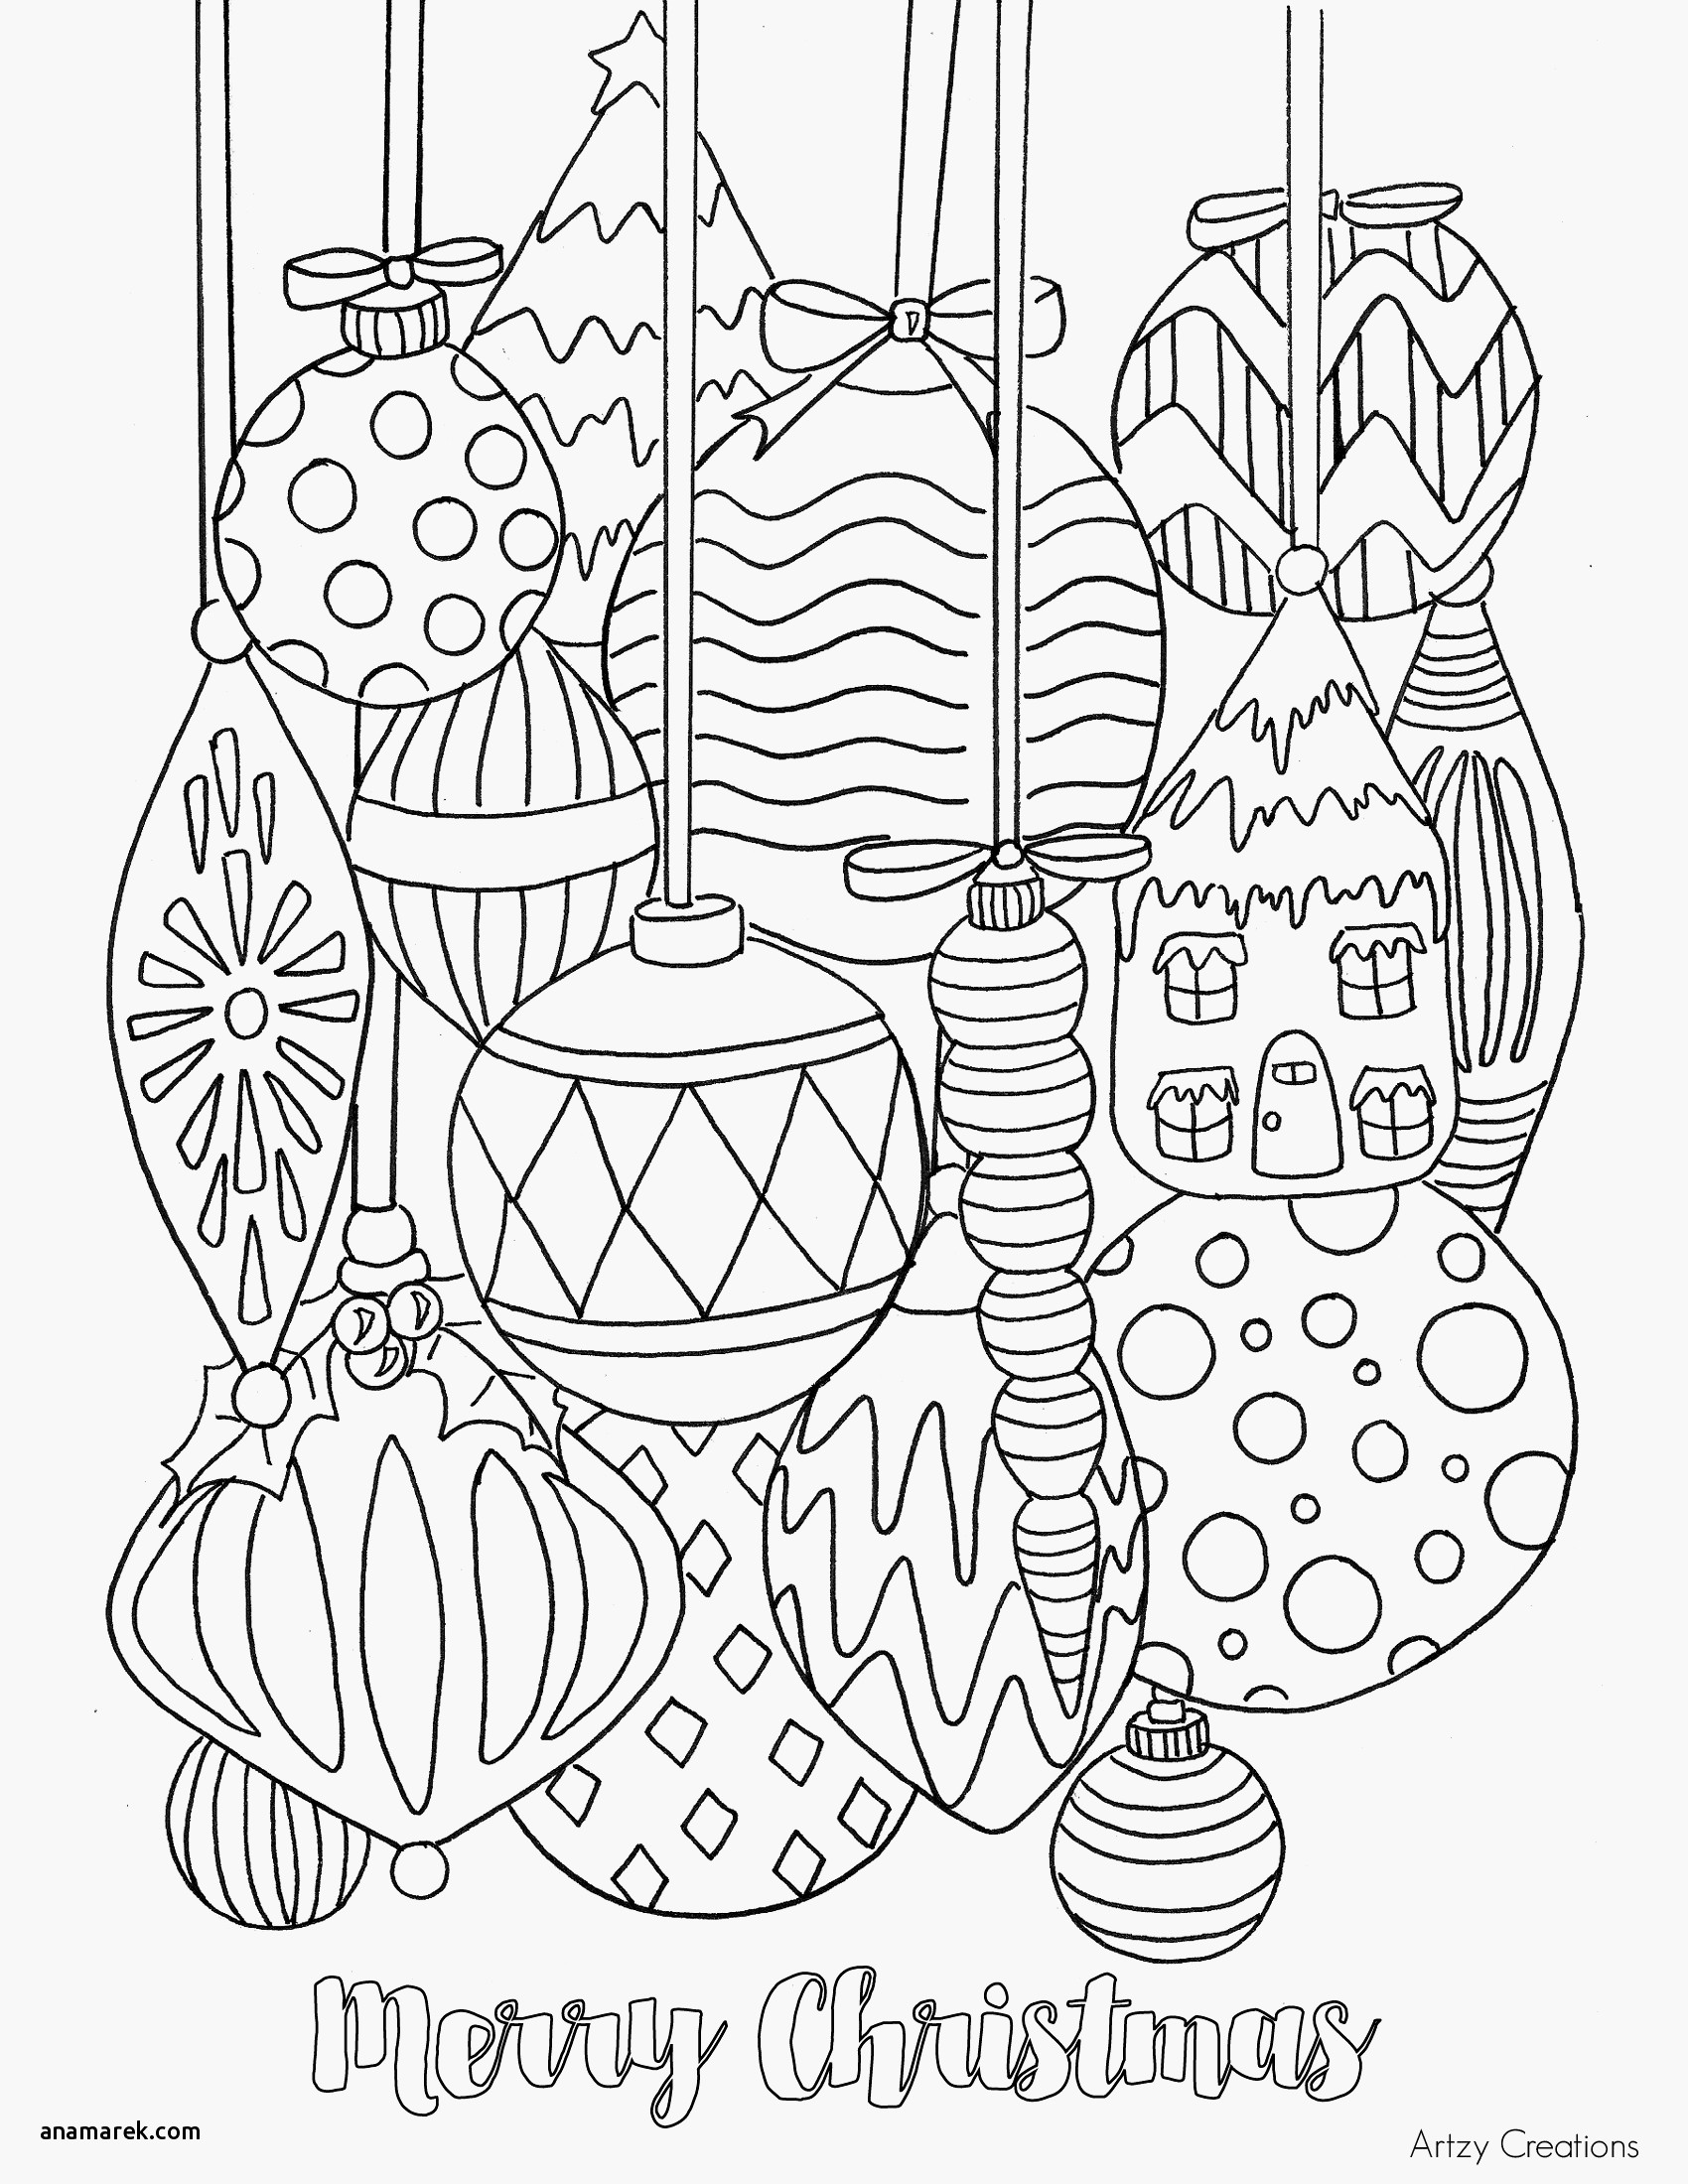 Christmas Coloring Pages Difficult With Velvet Books For Kids